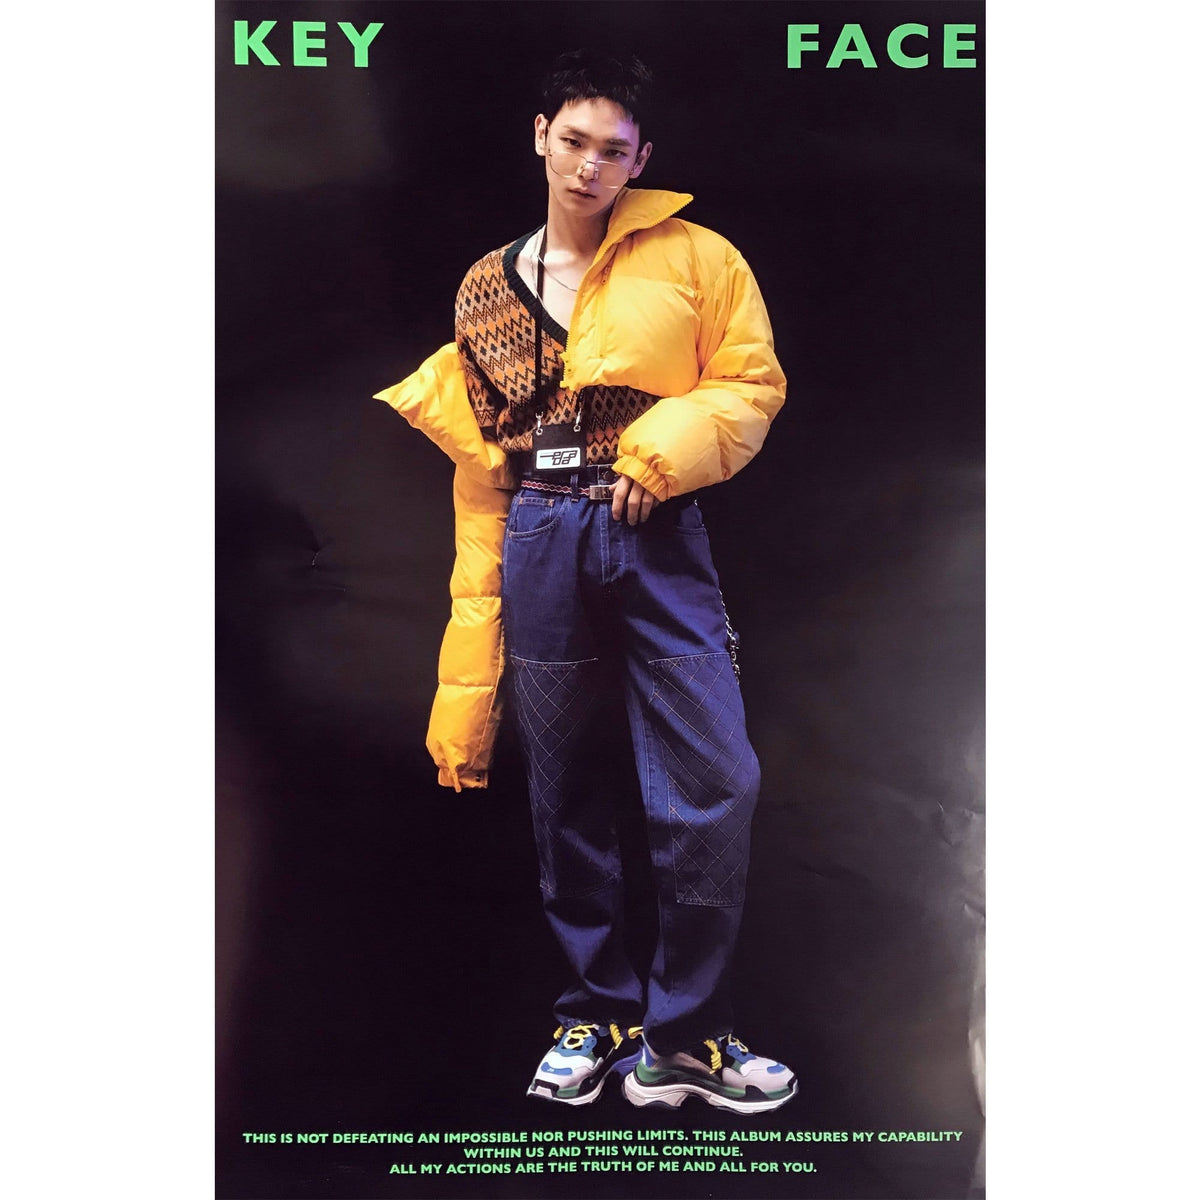 키 | KEY | 1st album | VOL  1 - [FACE] | POSTER